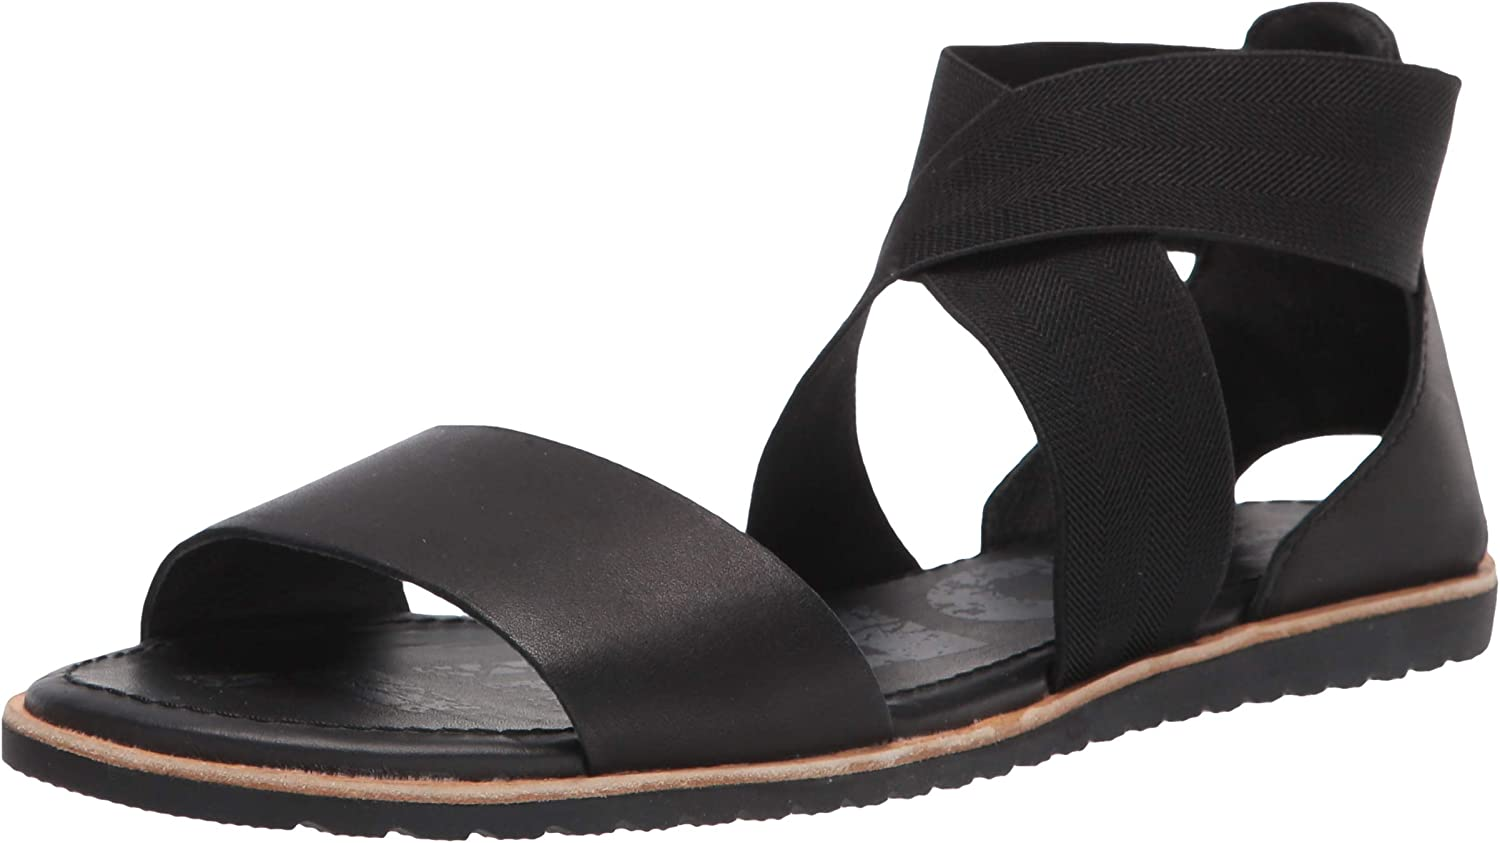 Sorel Minneapolis Mall Challenge the lowest price Women's Ankle Strap Sandals